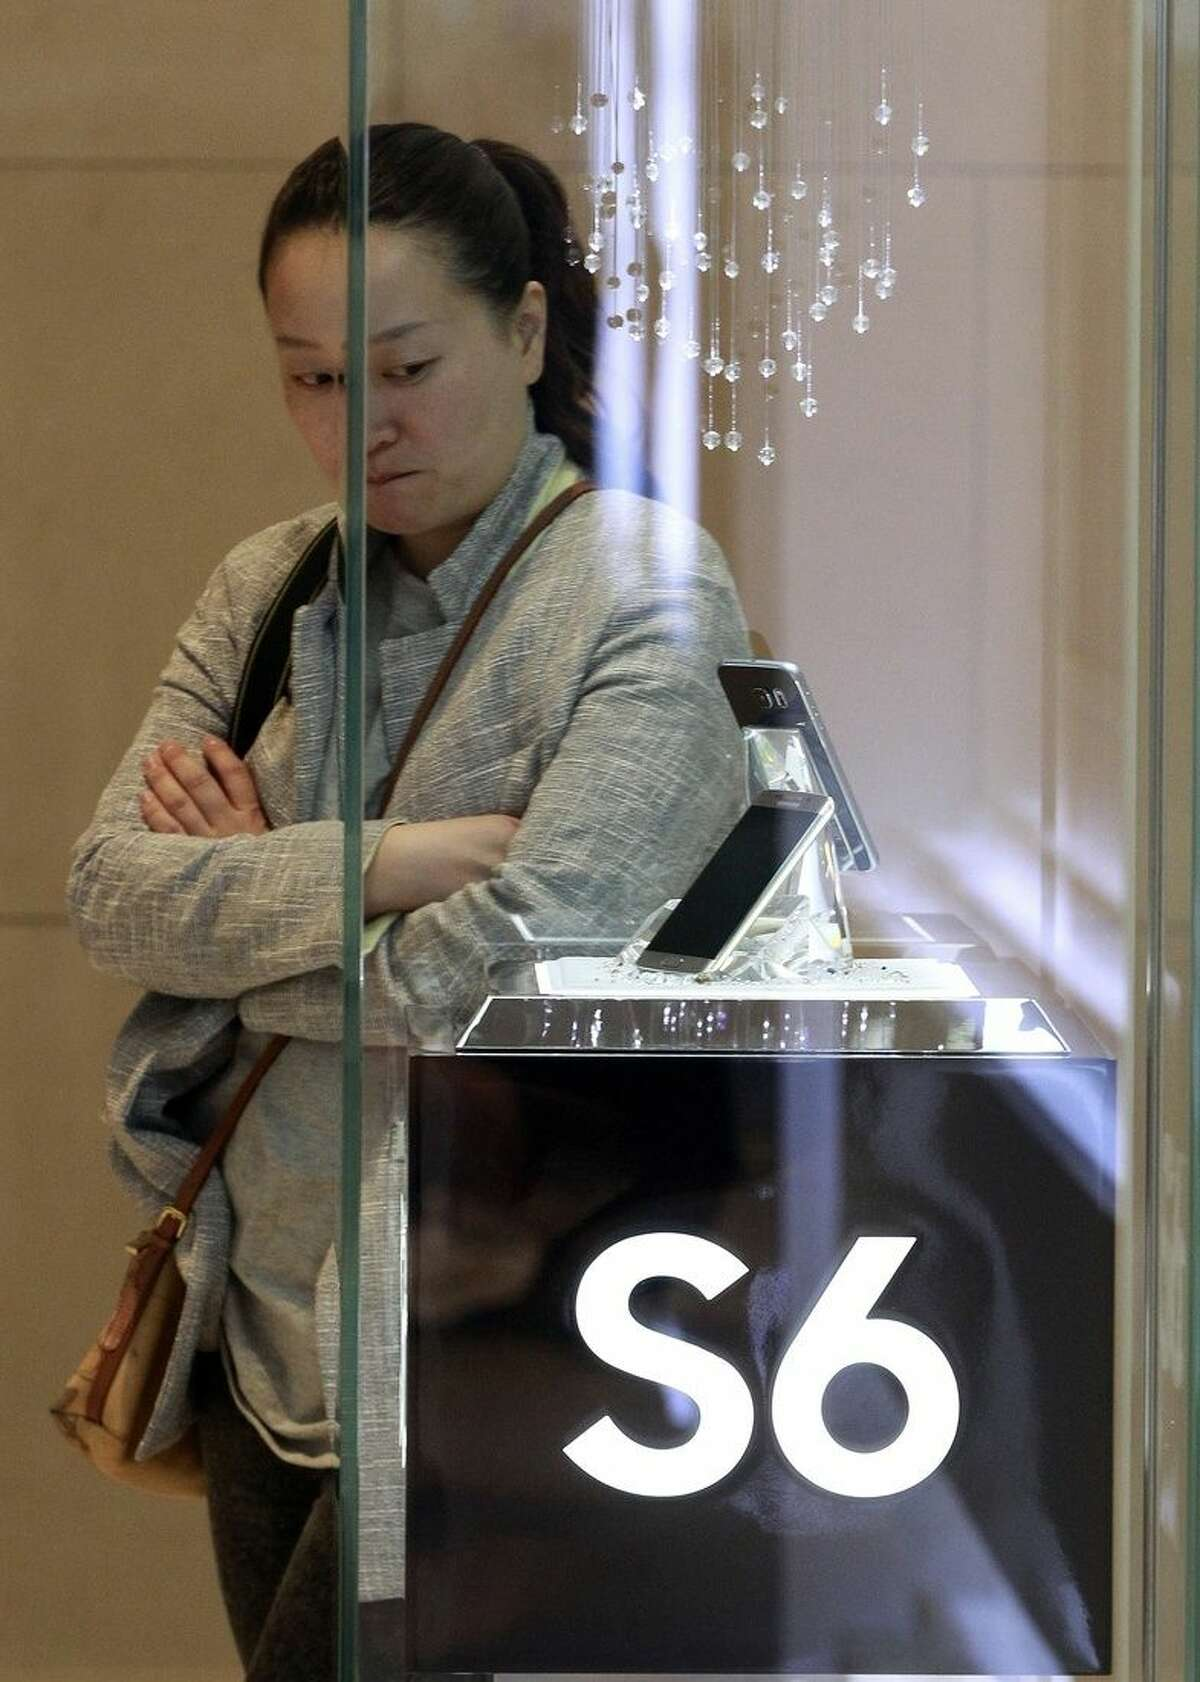 """A journalist looks at a Samsung Electronics Co.'s Galaxy S6 smartphone during its launch event at company's headquarter in Seoul, South Korea, Thursday, April 9, 2015. When Samsung dubbed development of its latest smartphones """"Project Zero,"""" it was sounding a note of desperation as sales tumbled and it lost pole position in the crucial Chinese market to rivals Xiaomi and Apple. (AP Photo/Ahn Young-joon)"""